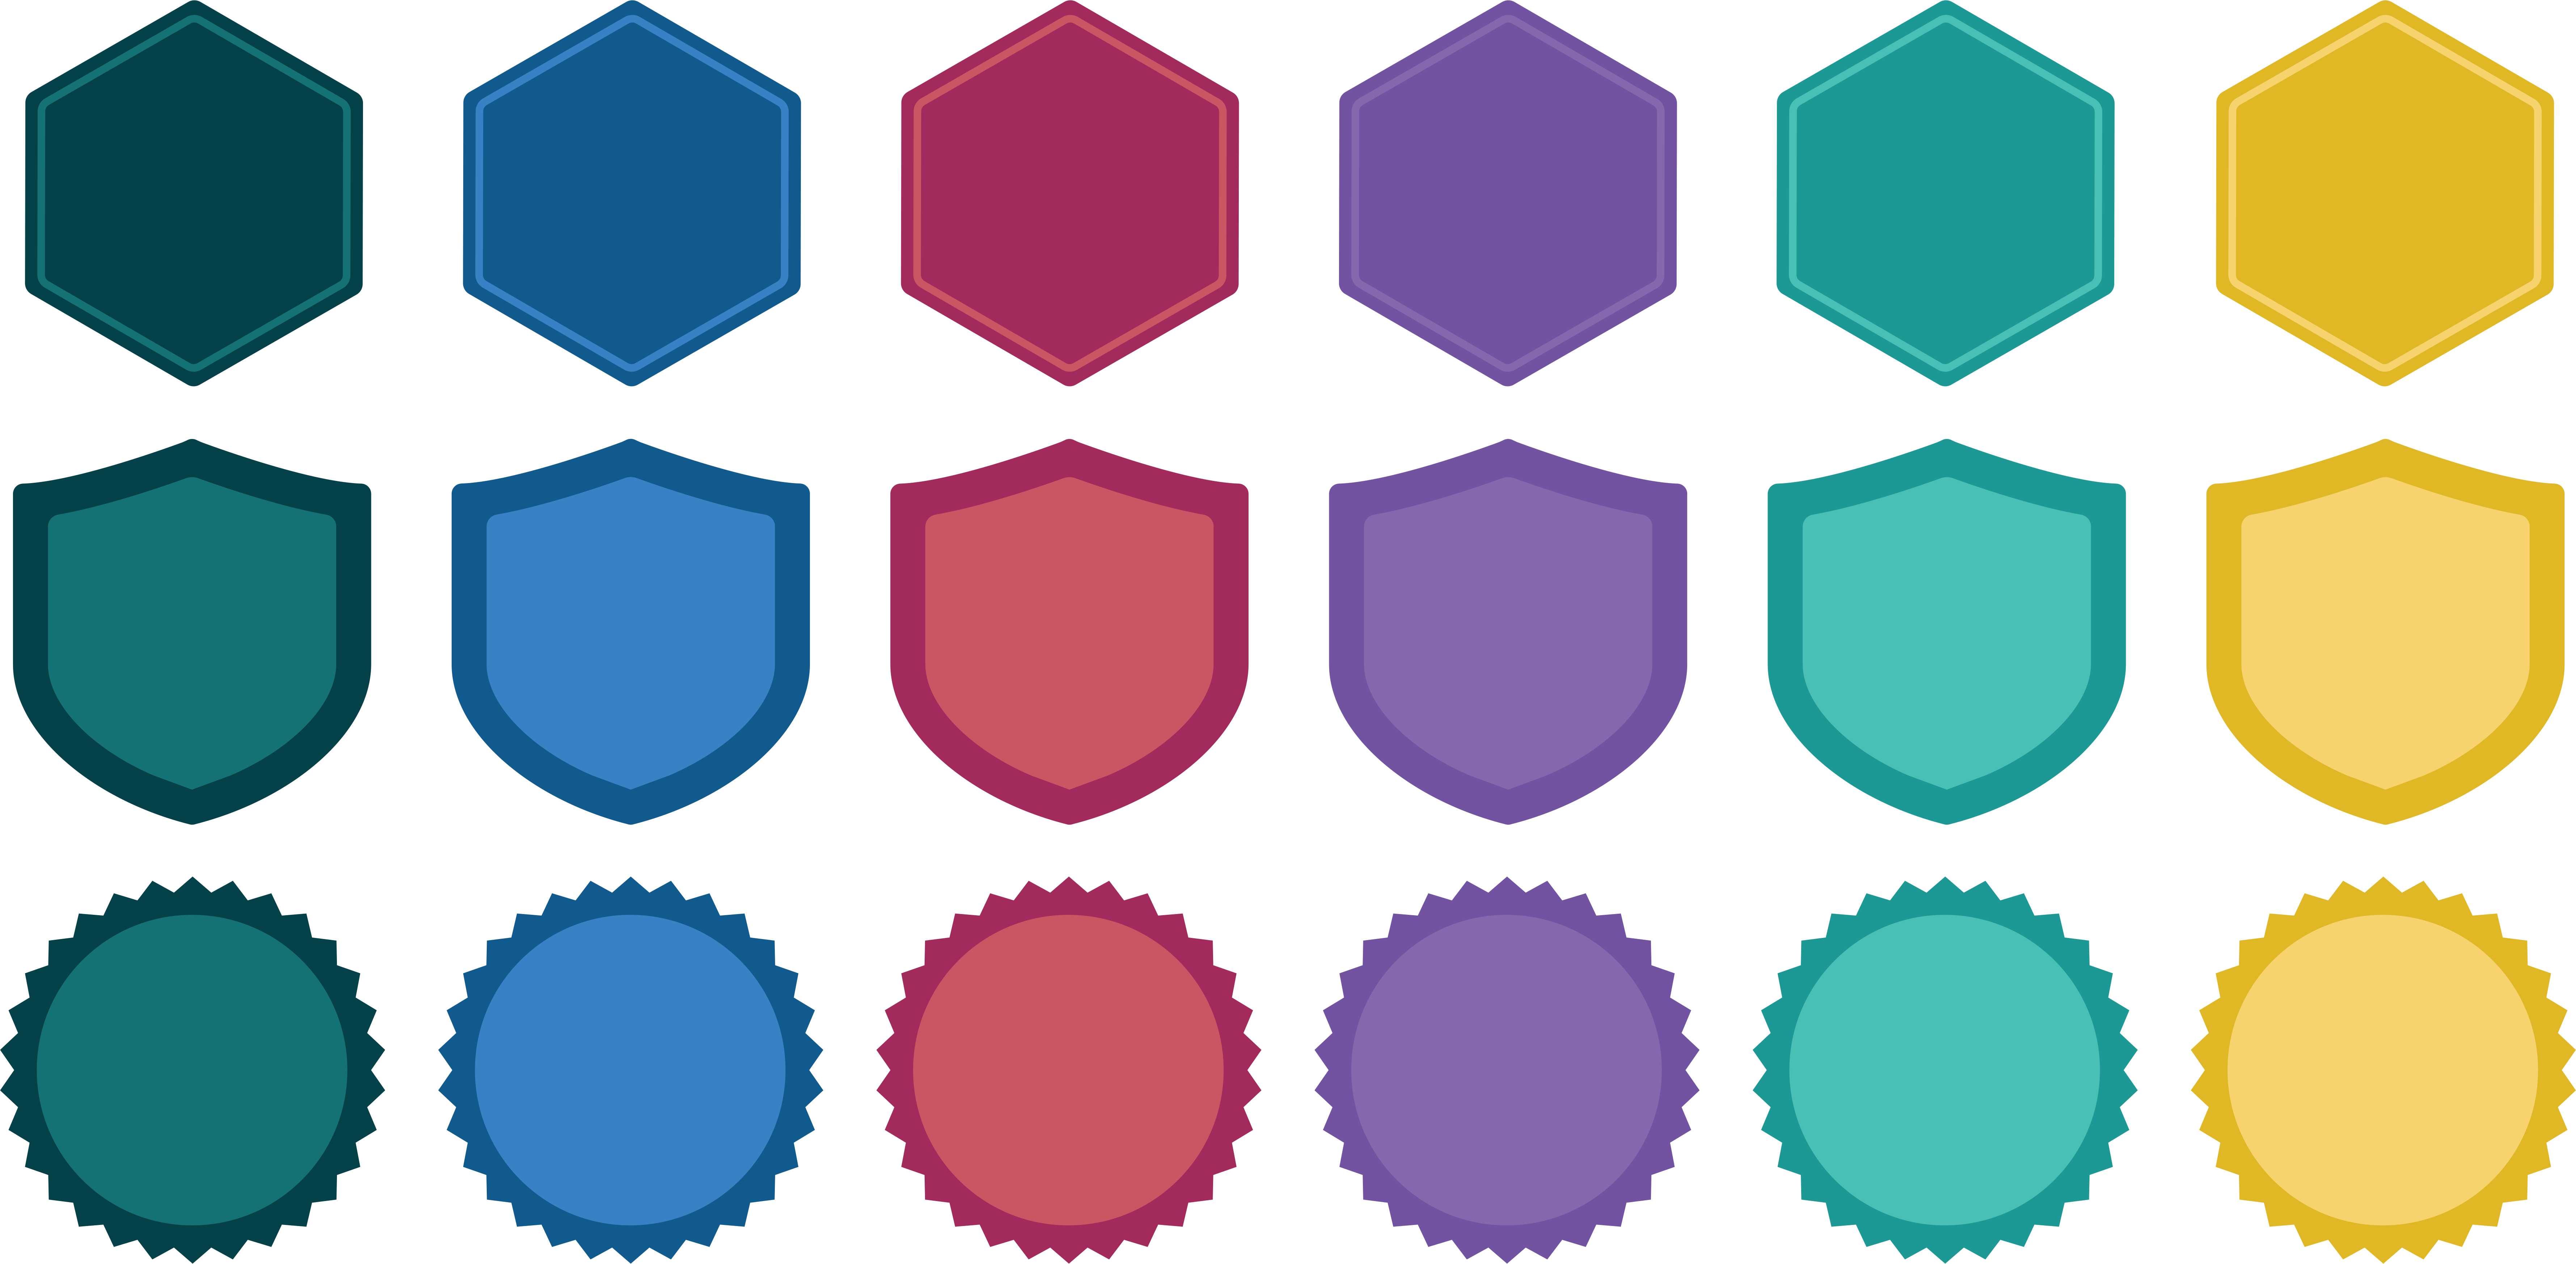 Badge shapes png. Designing a accredible add